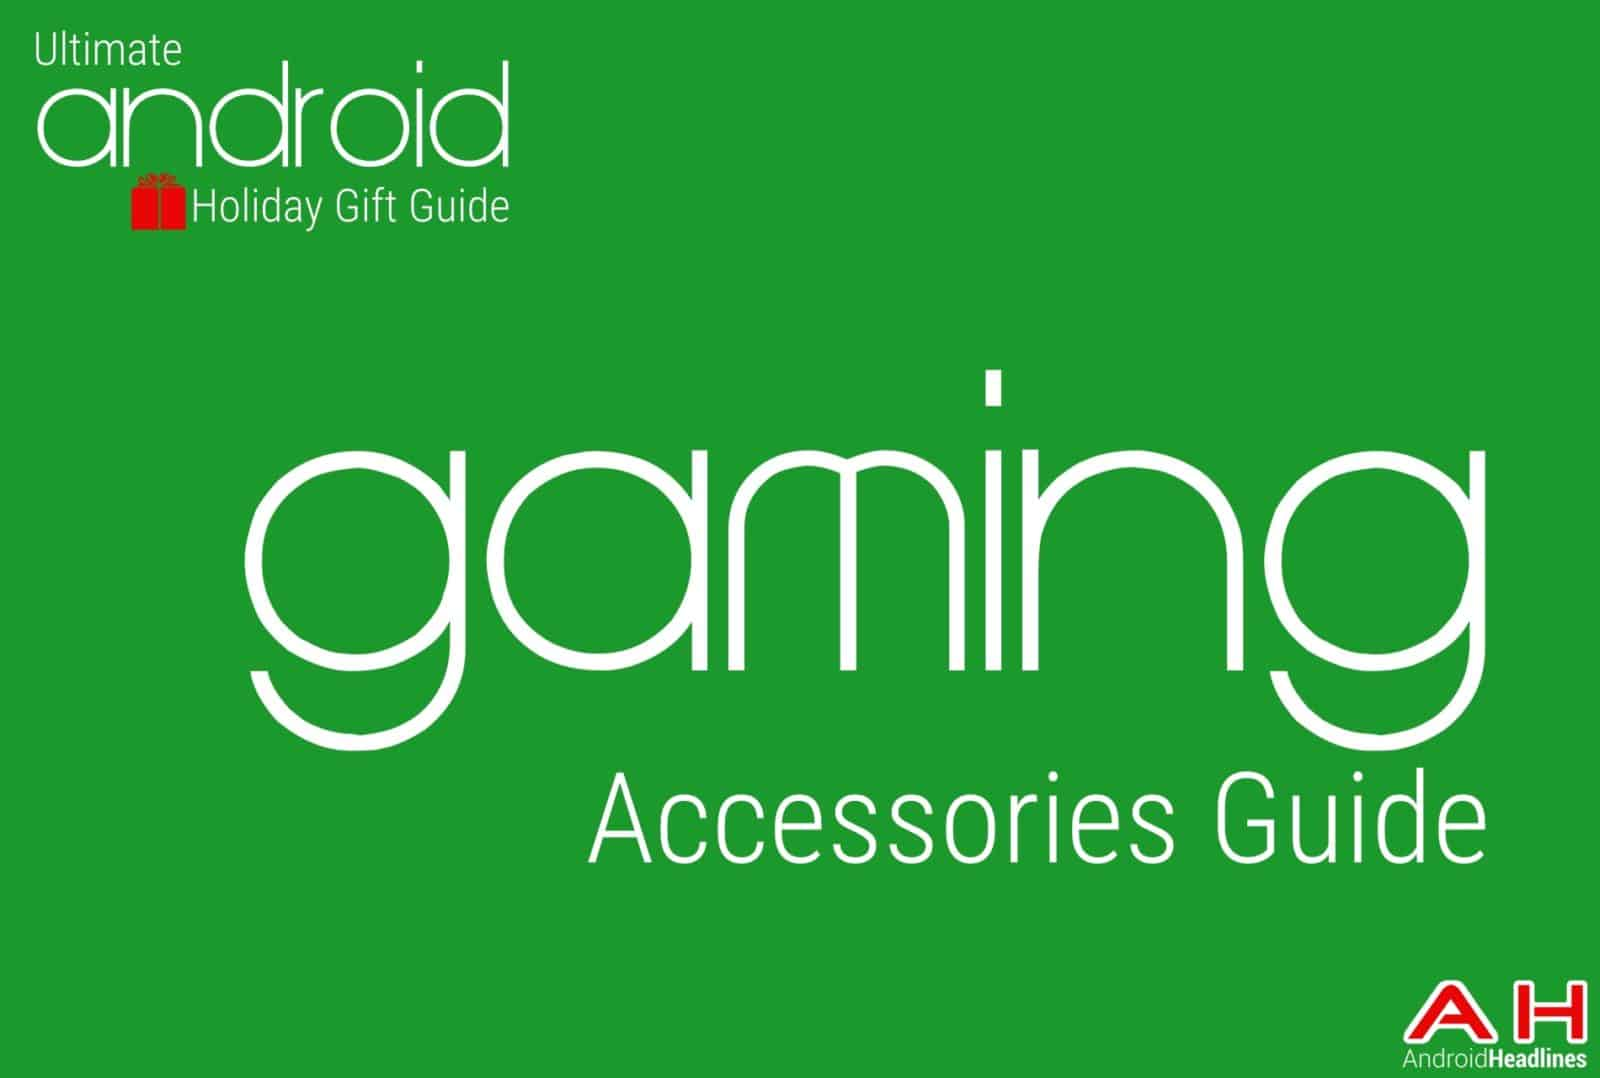 Best Android gaming accessories Guide - Android Holiday Gift Guide Top 10